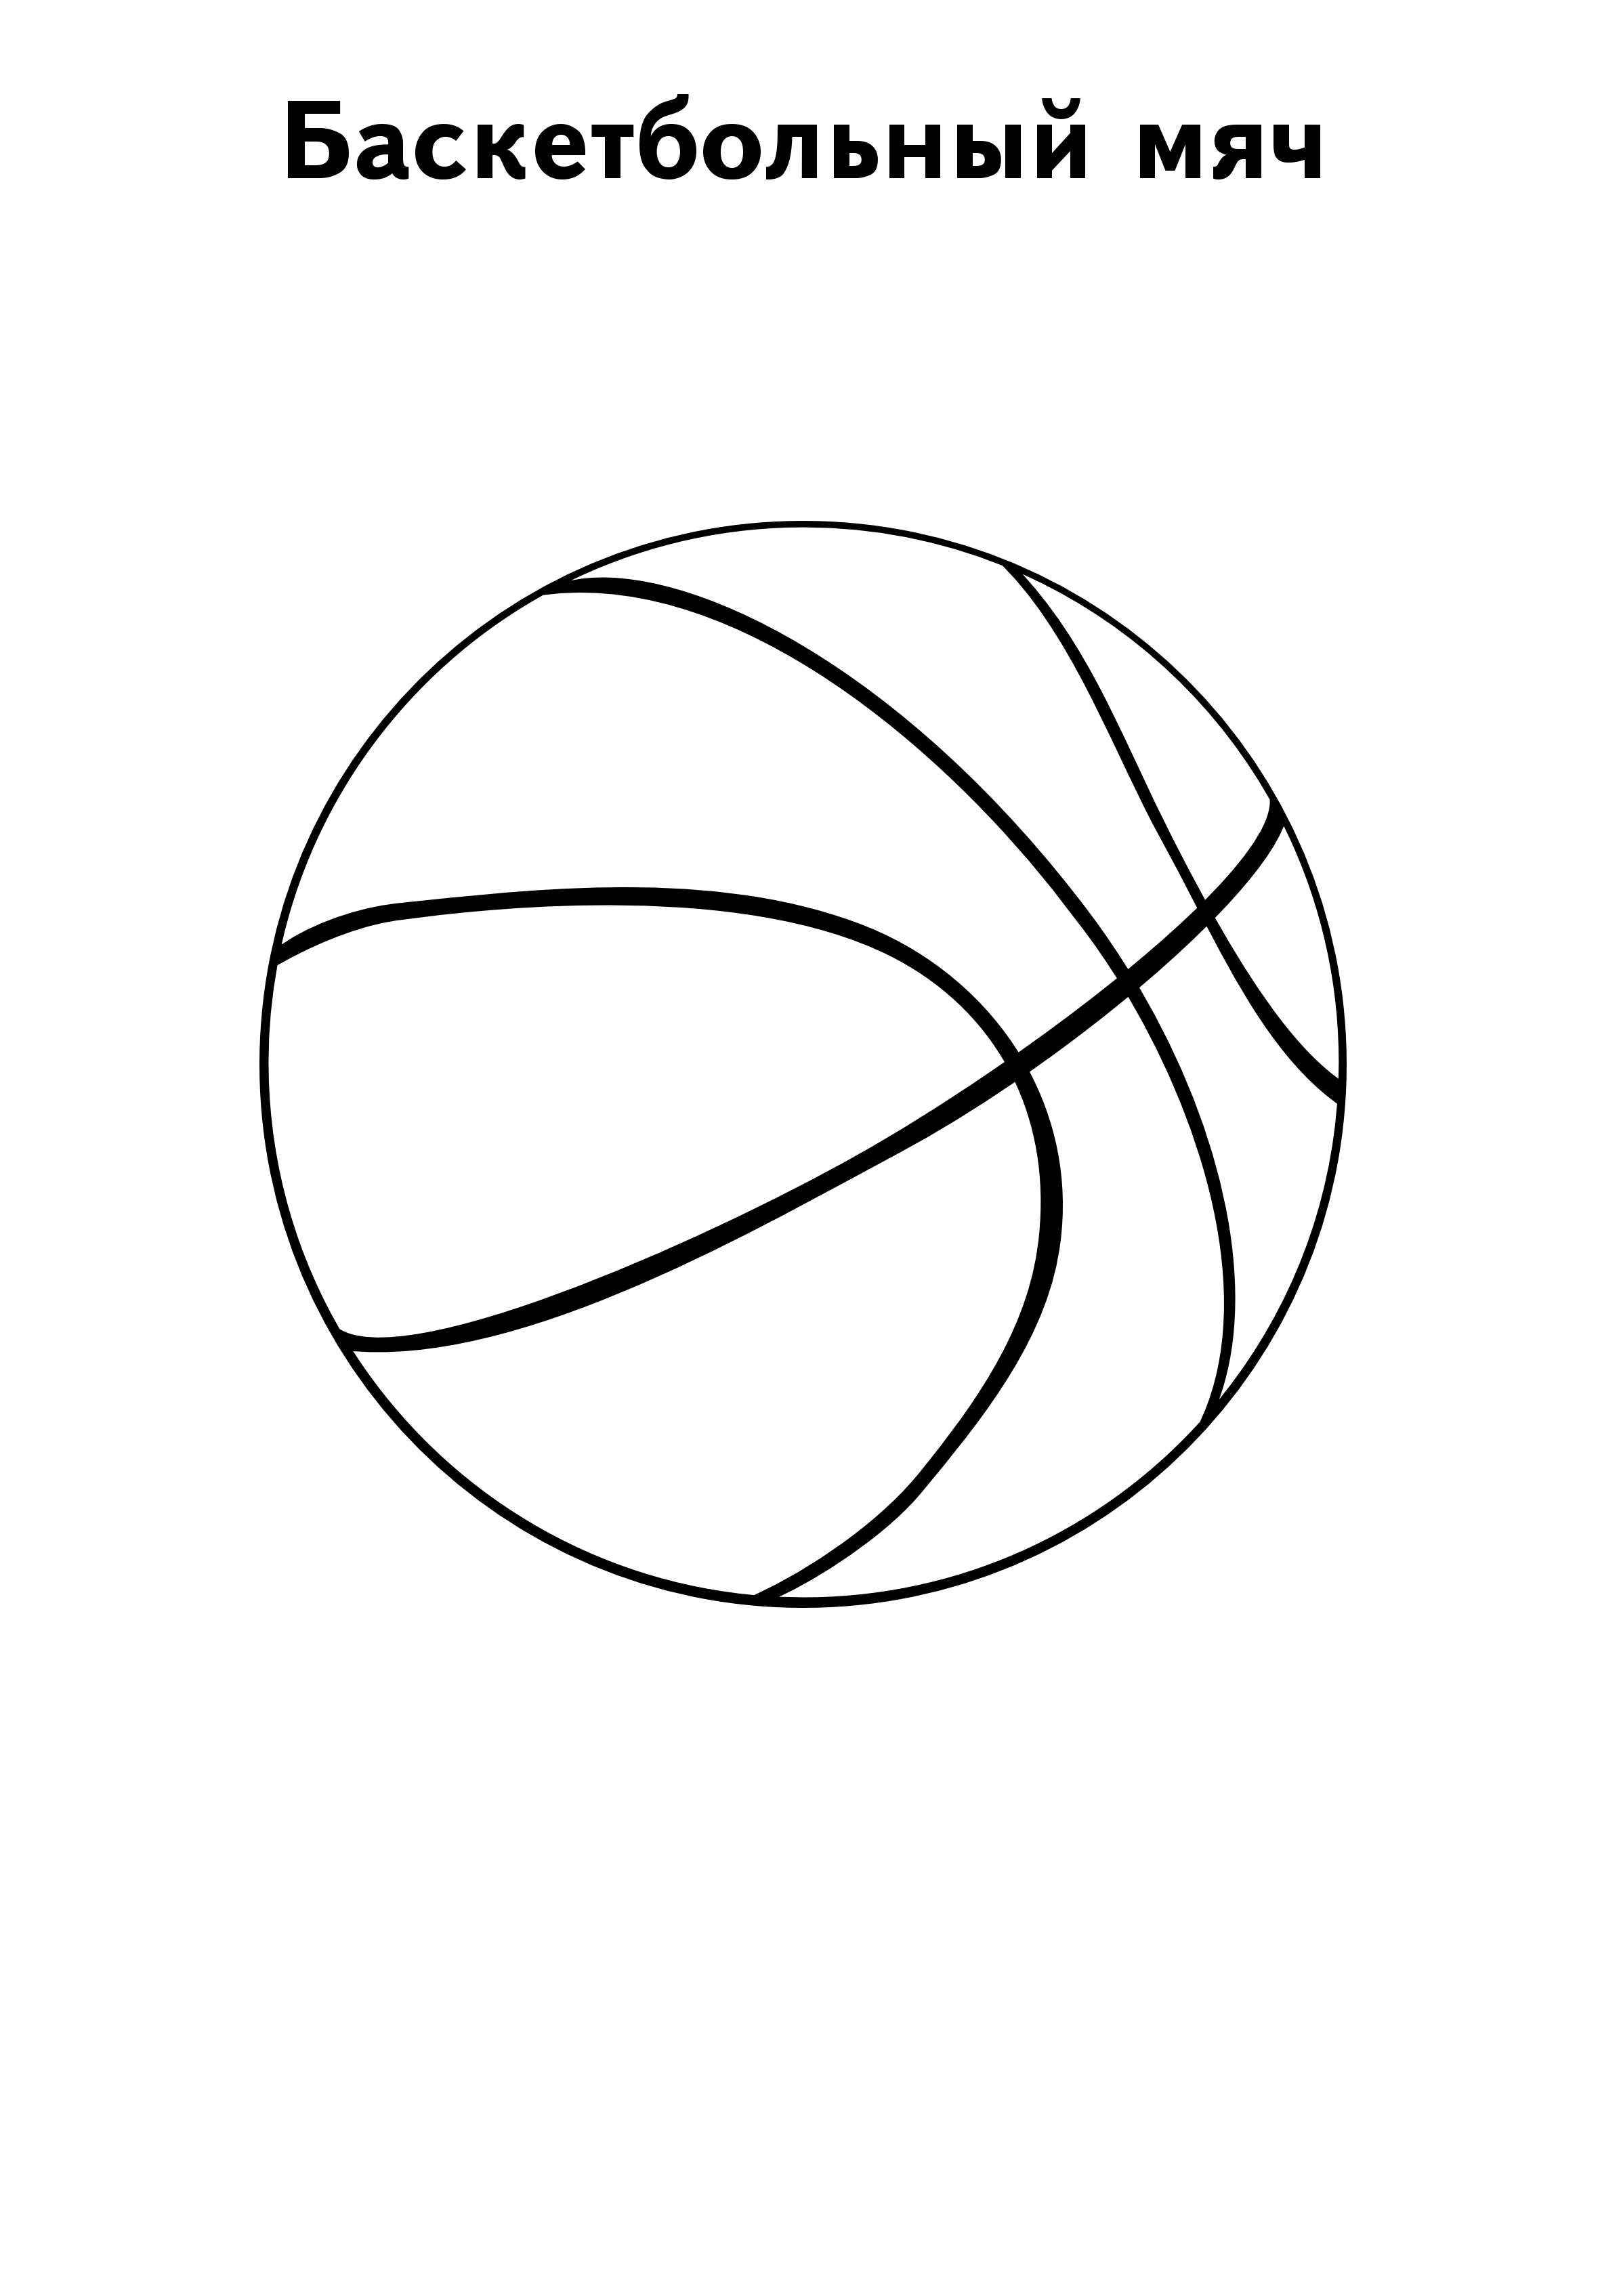 Ball coloring pages for kids to